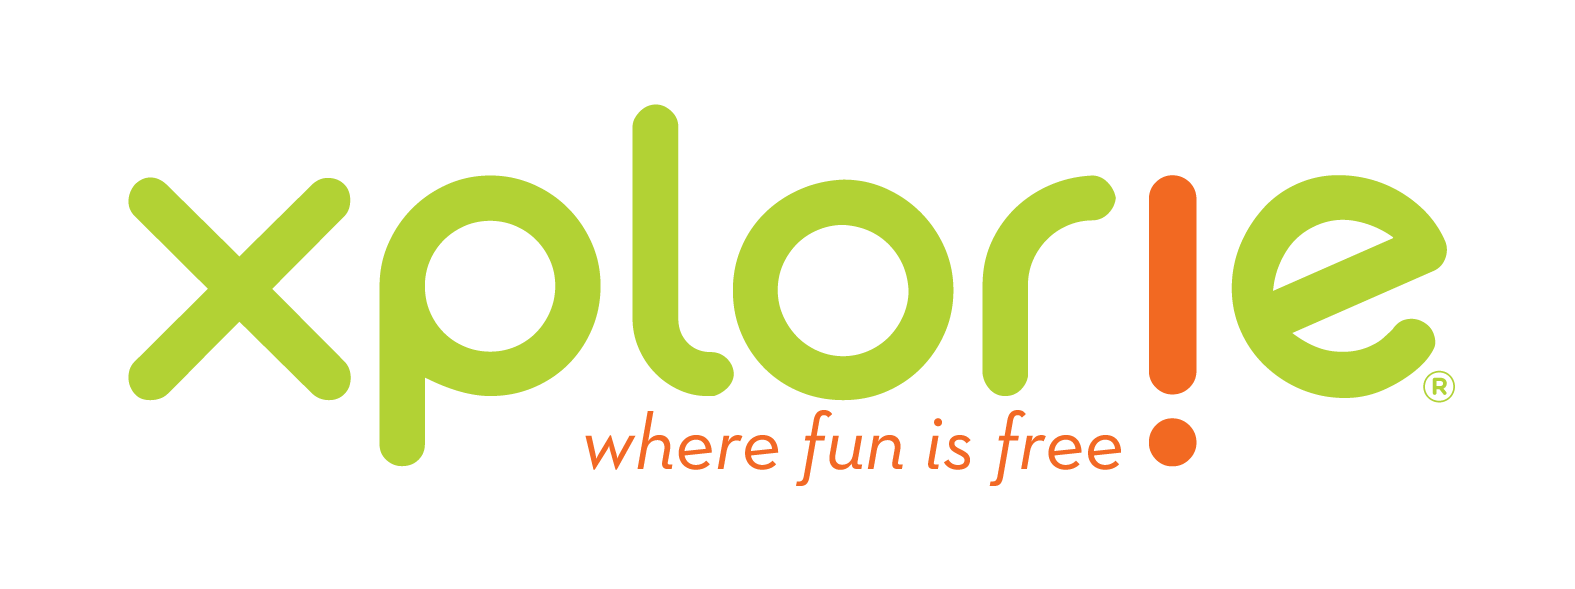 Xplorie_Logo_with_tagline.png